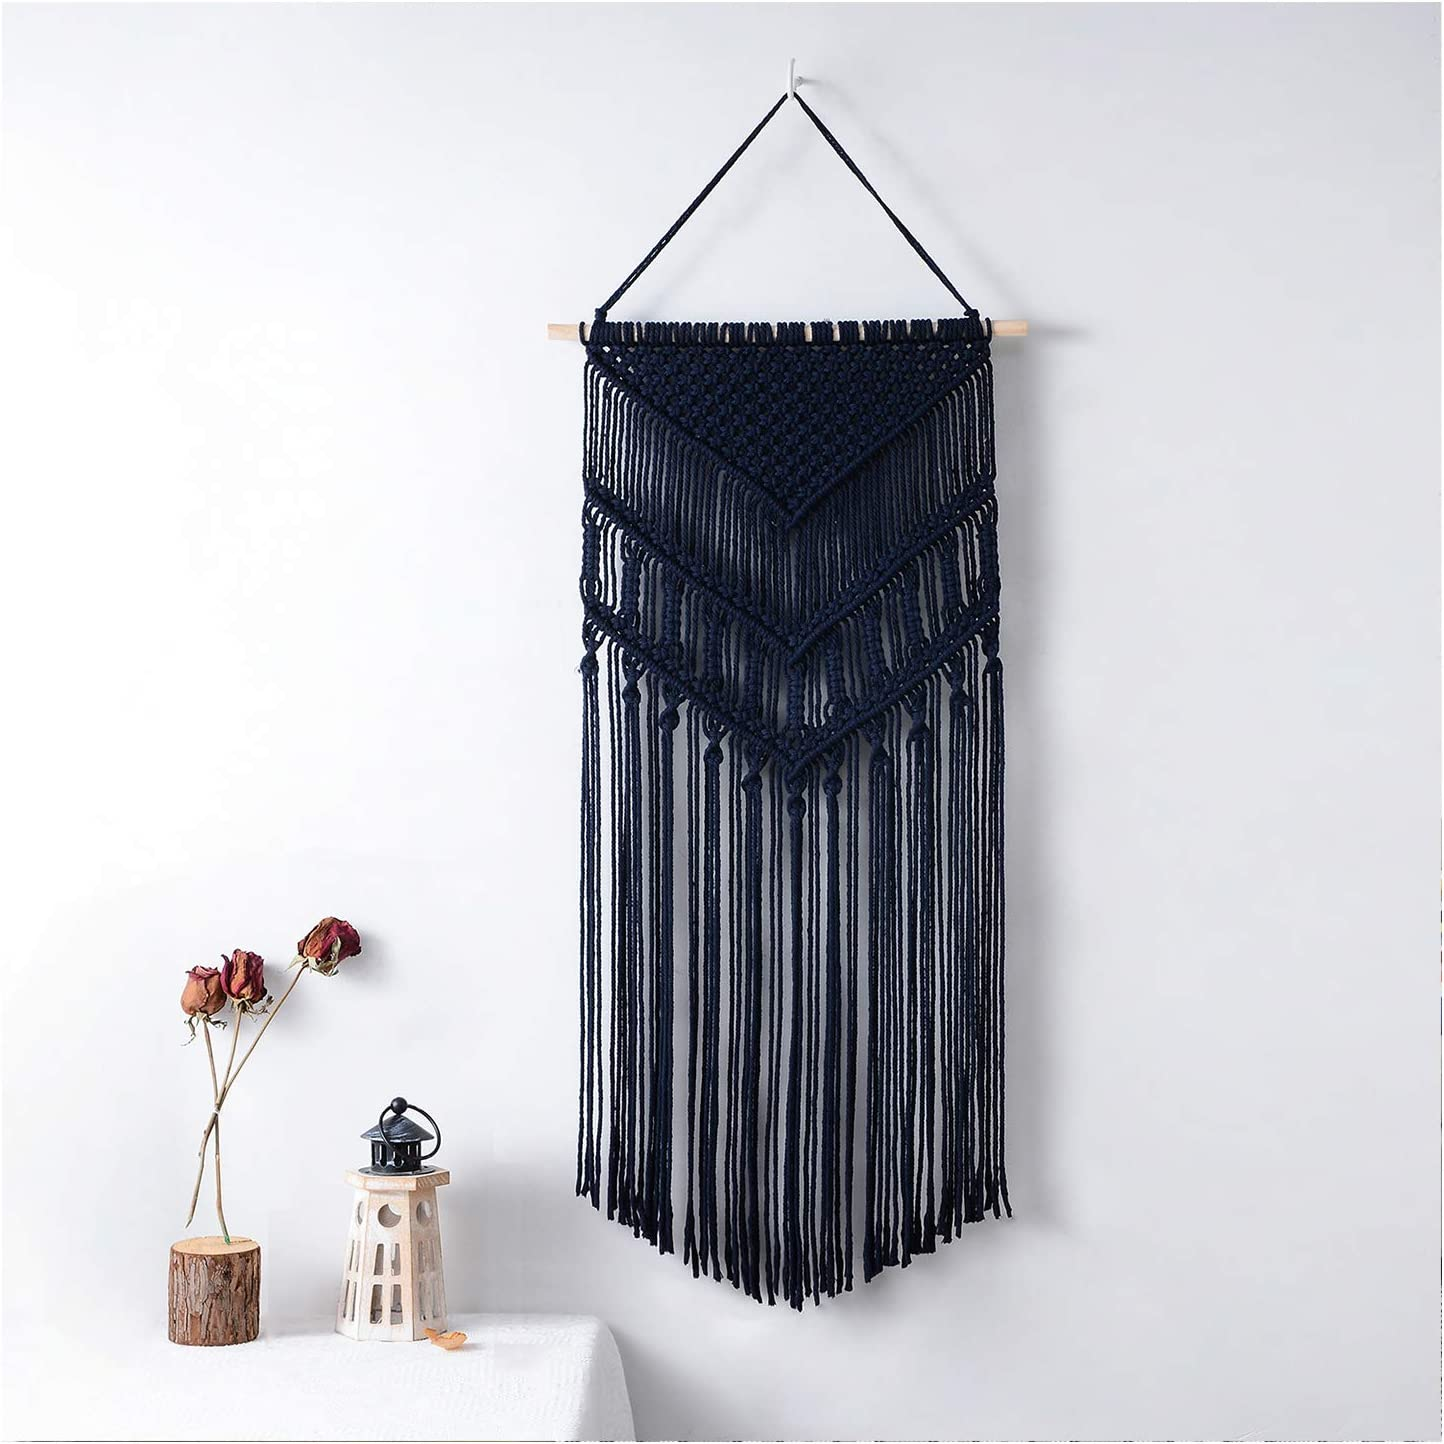 MREYYOO Macrame Wall Hanging Boho Wall Decor Woven Tapestry Bohemian Wall Art for Home, Bedroom, Baby Nursery, Wedding, Apartment, 17 x 35.4 Inch, Deep Blue